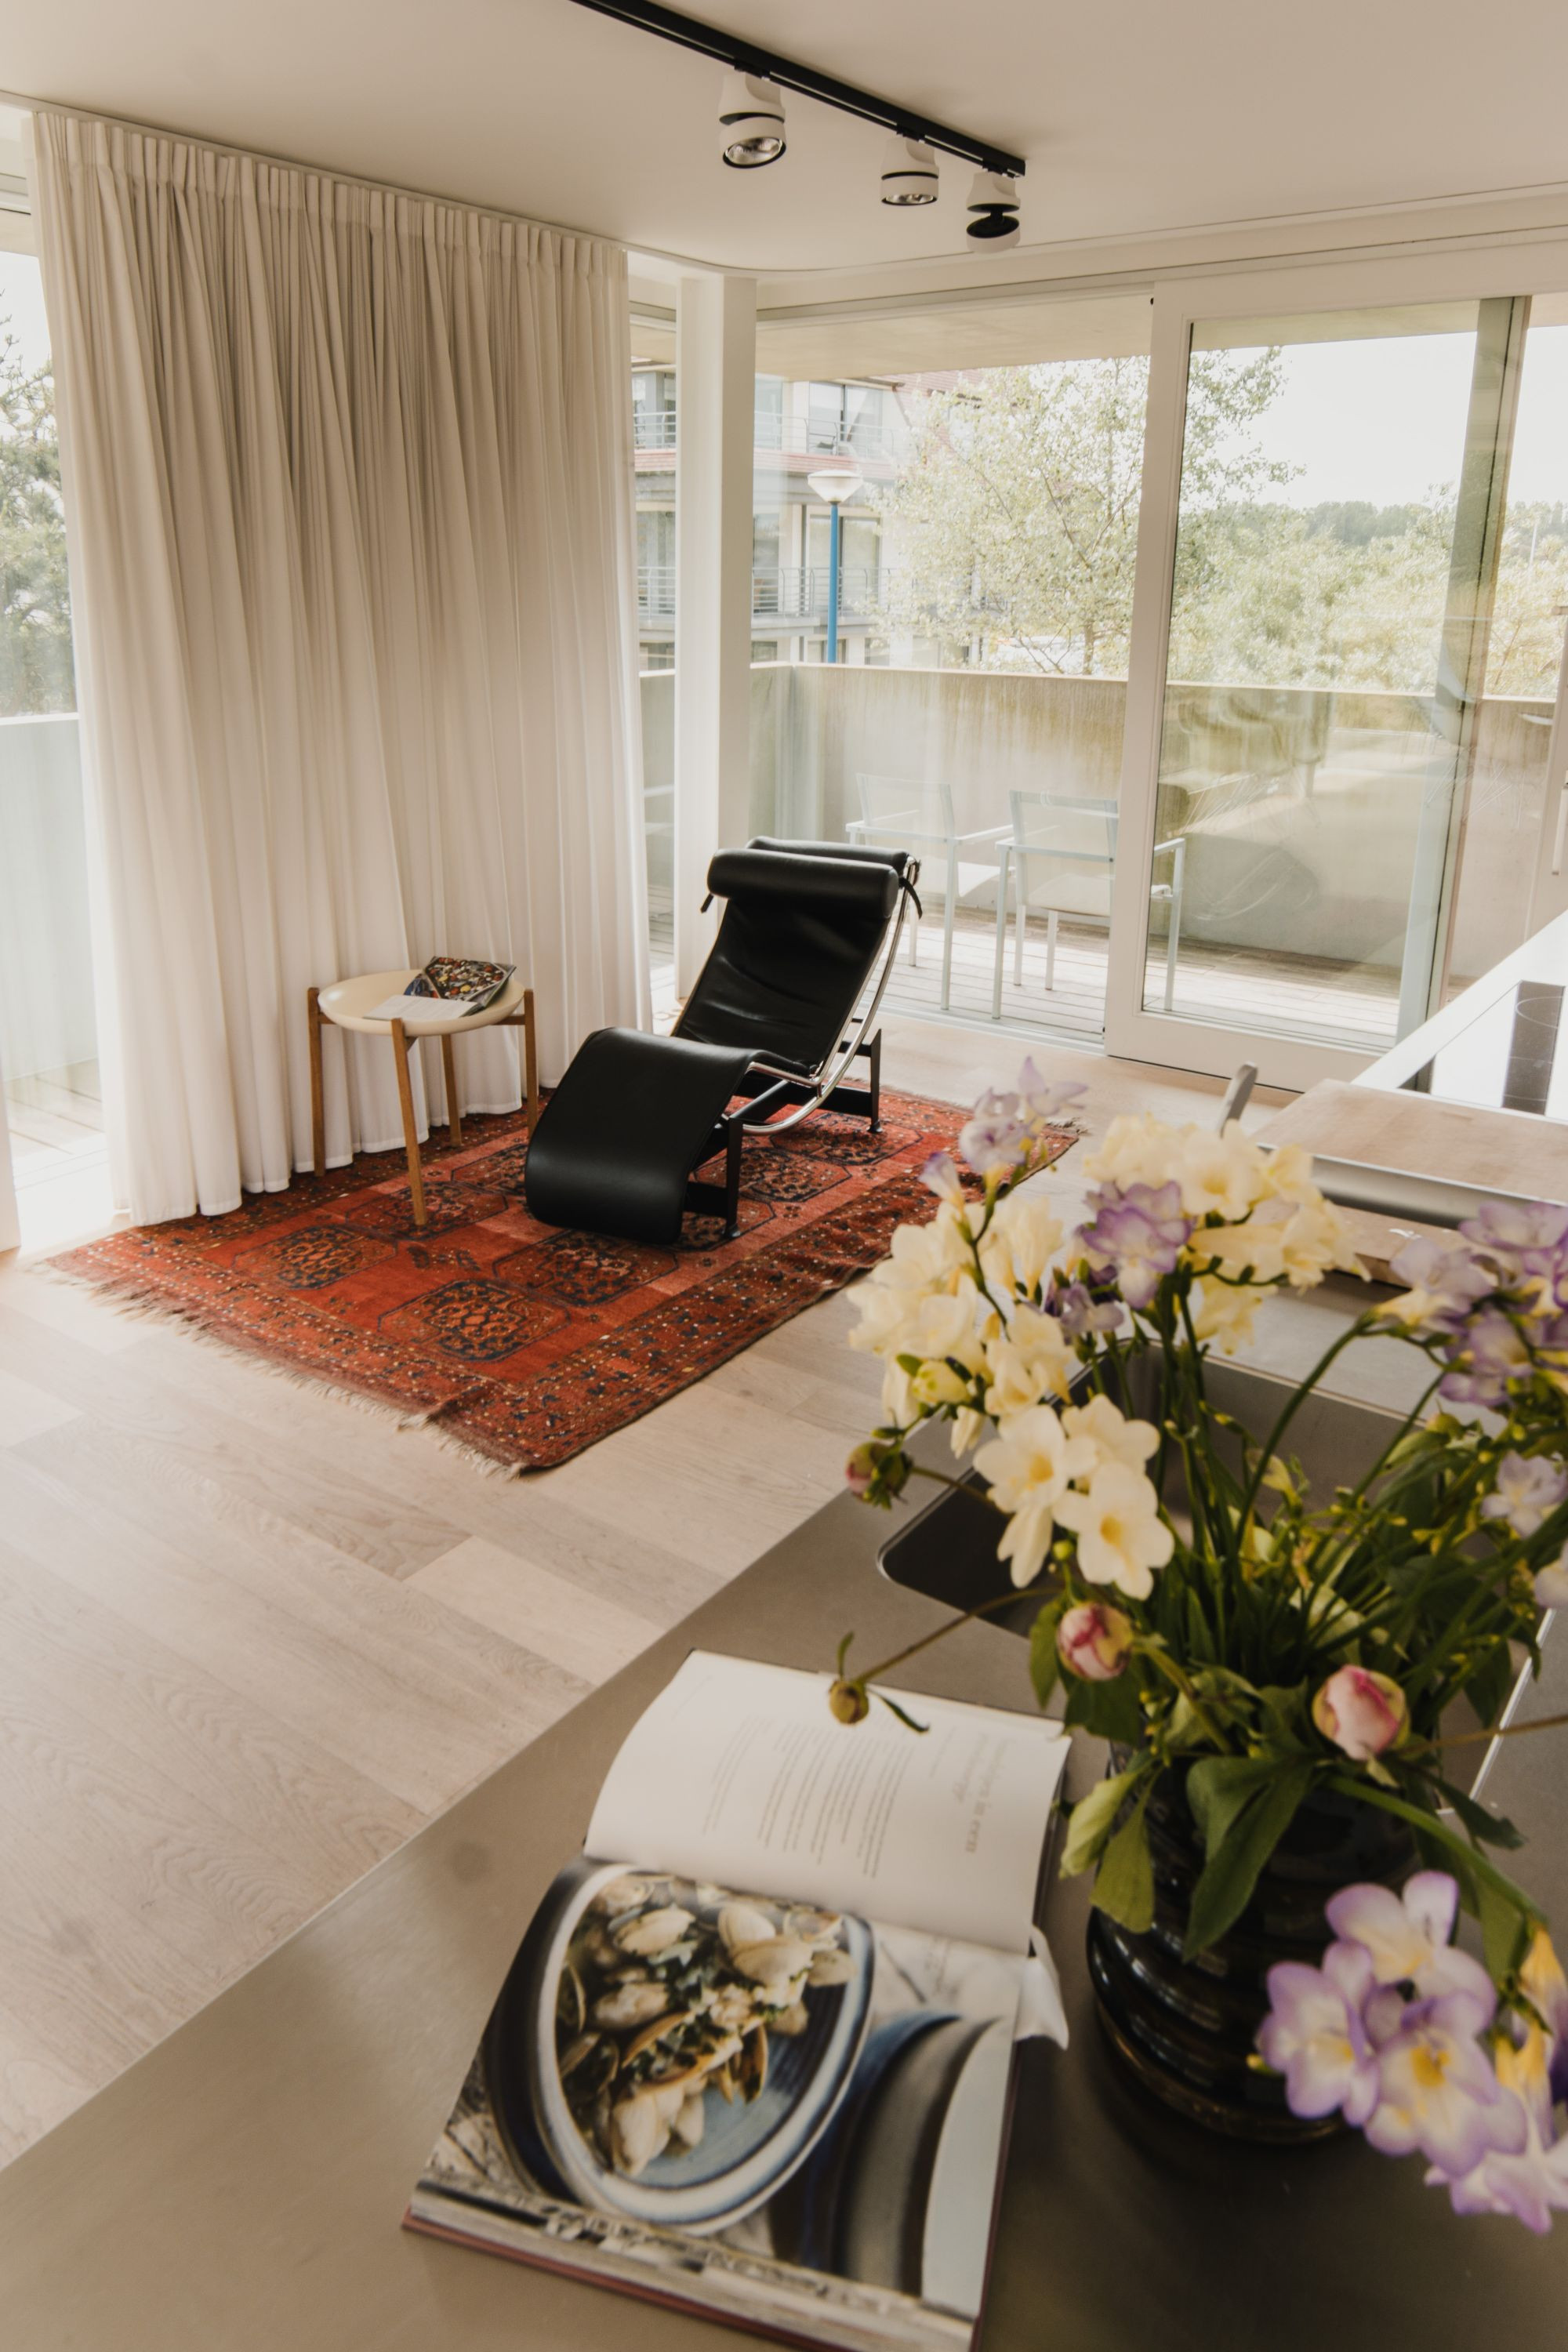 Duinappartement - Arne Jacobsen - Pic by Dayo Clinckspoor33